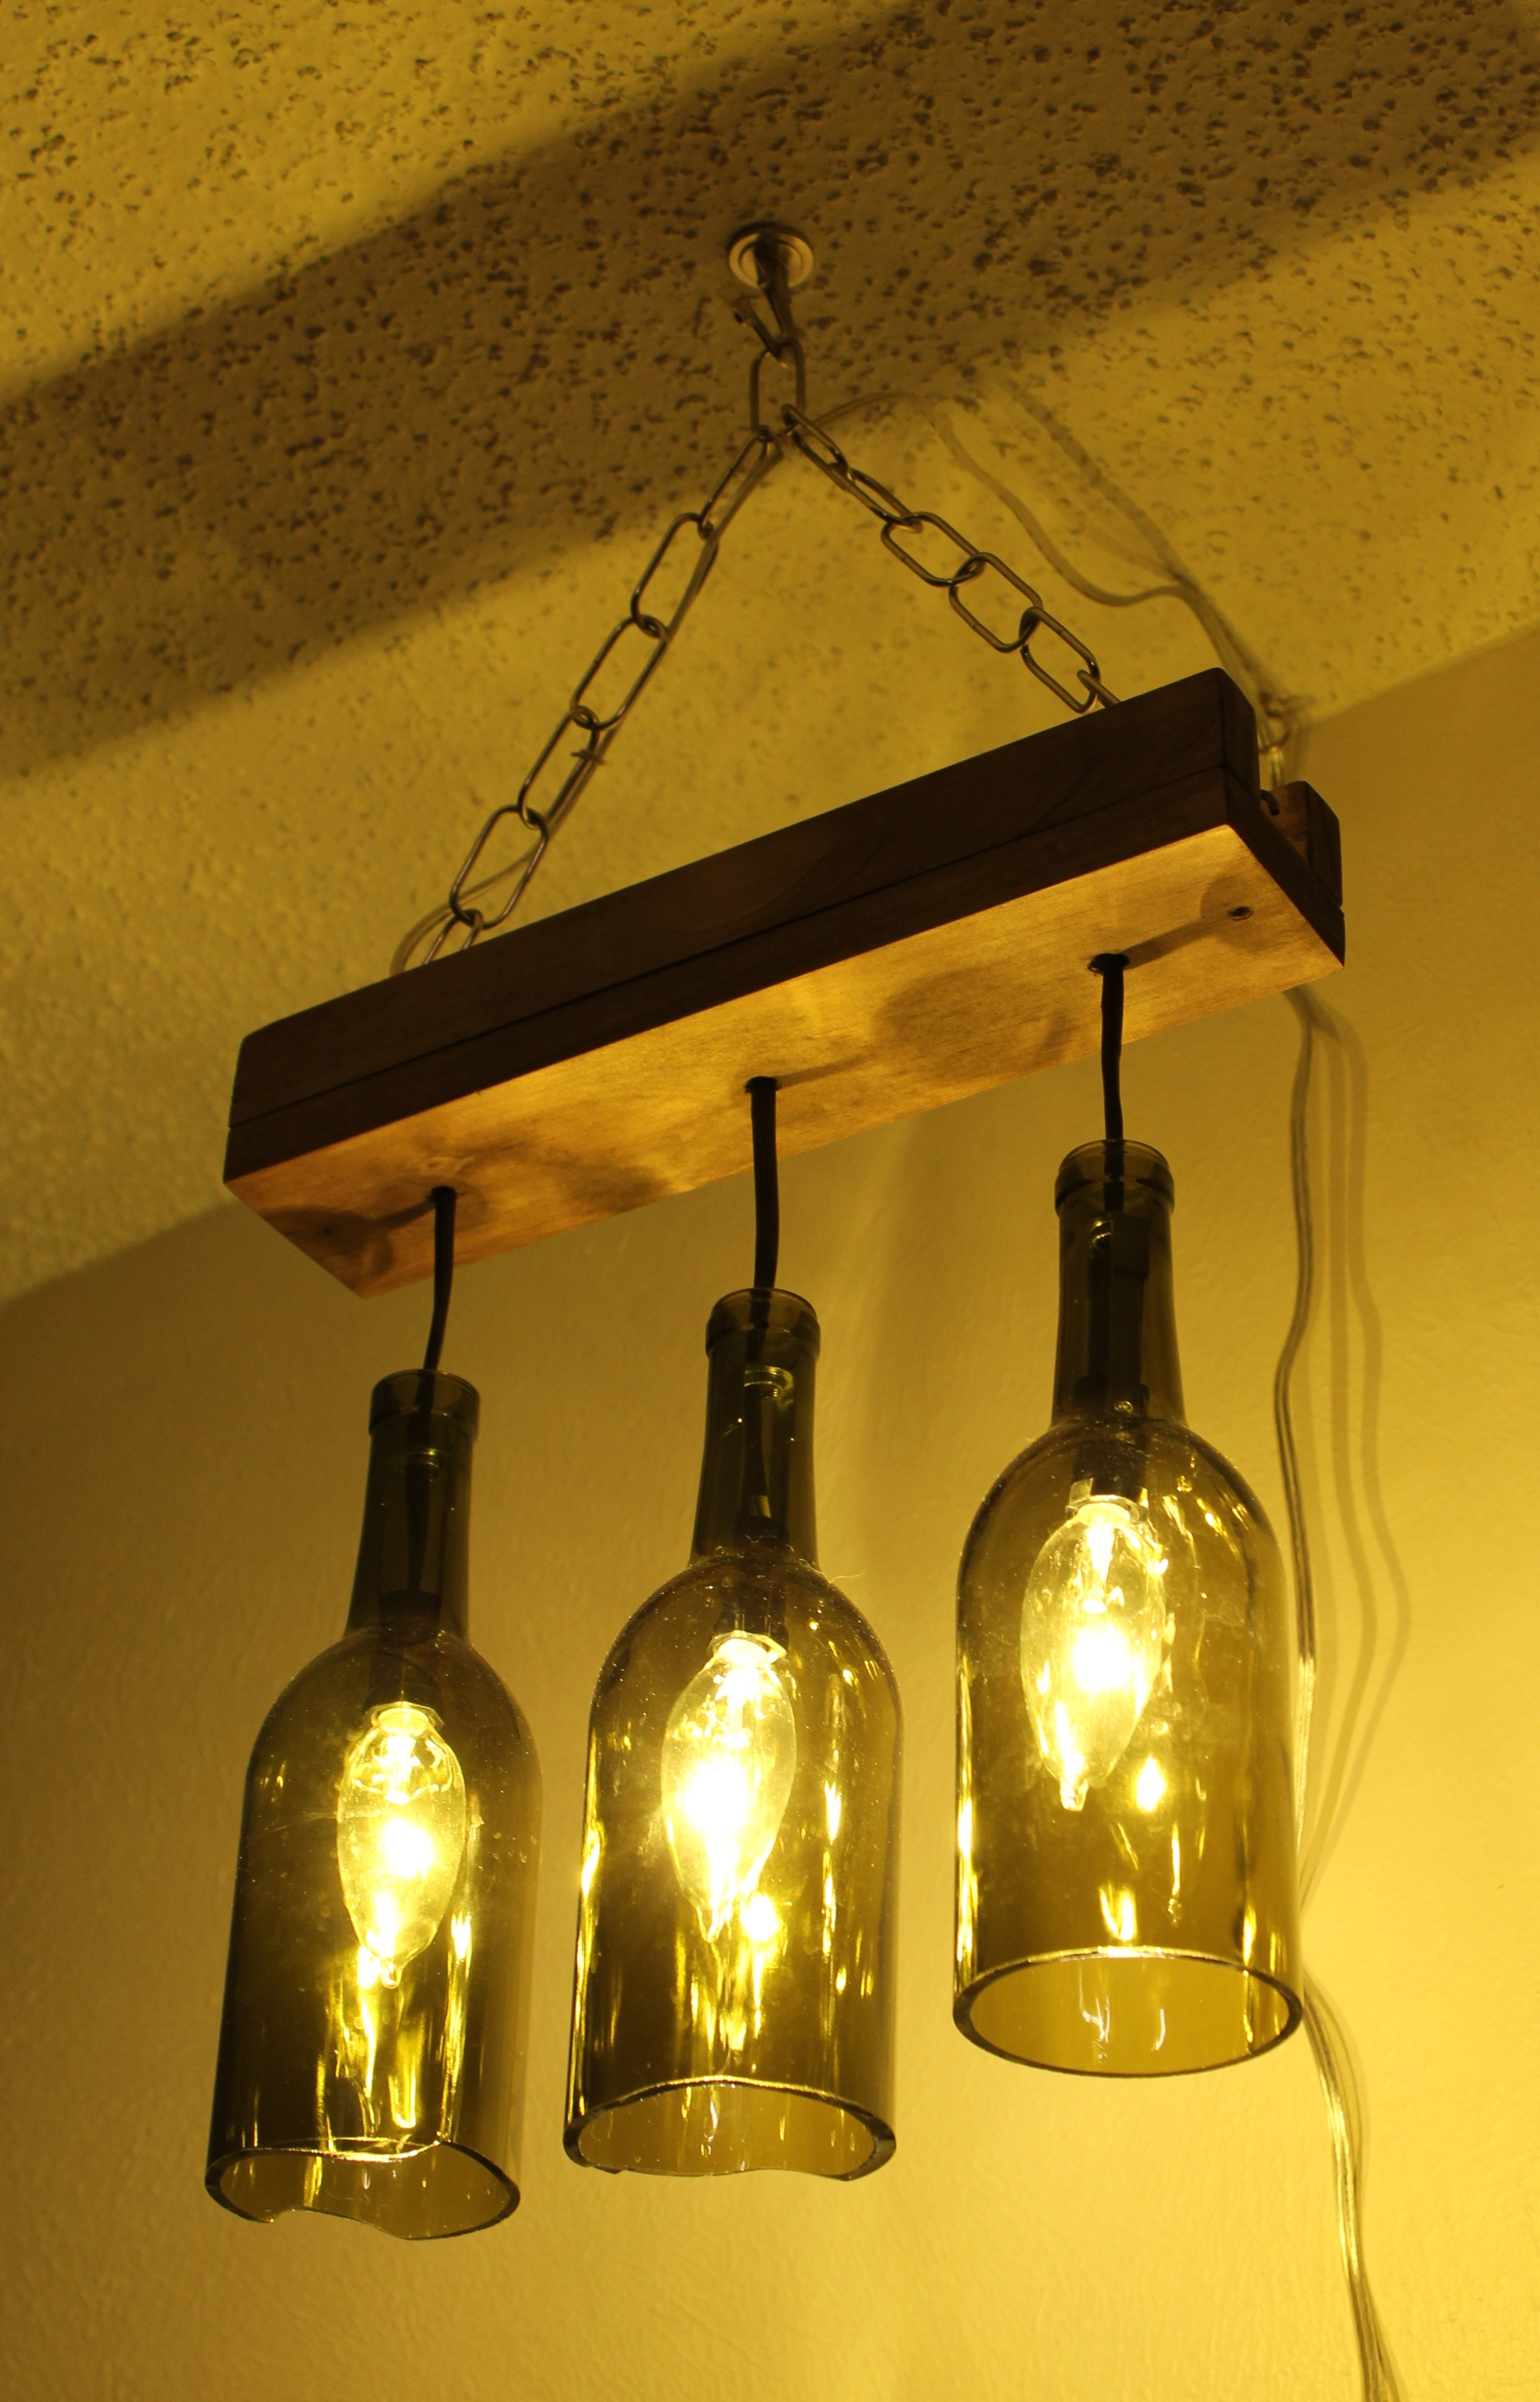 Outdoor Hanging Bottle Lights With Regard To Most Recent Light: Wine Bottle Lights Hanging (View 12 of 20)